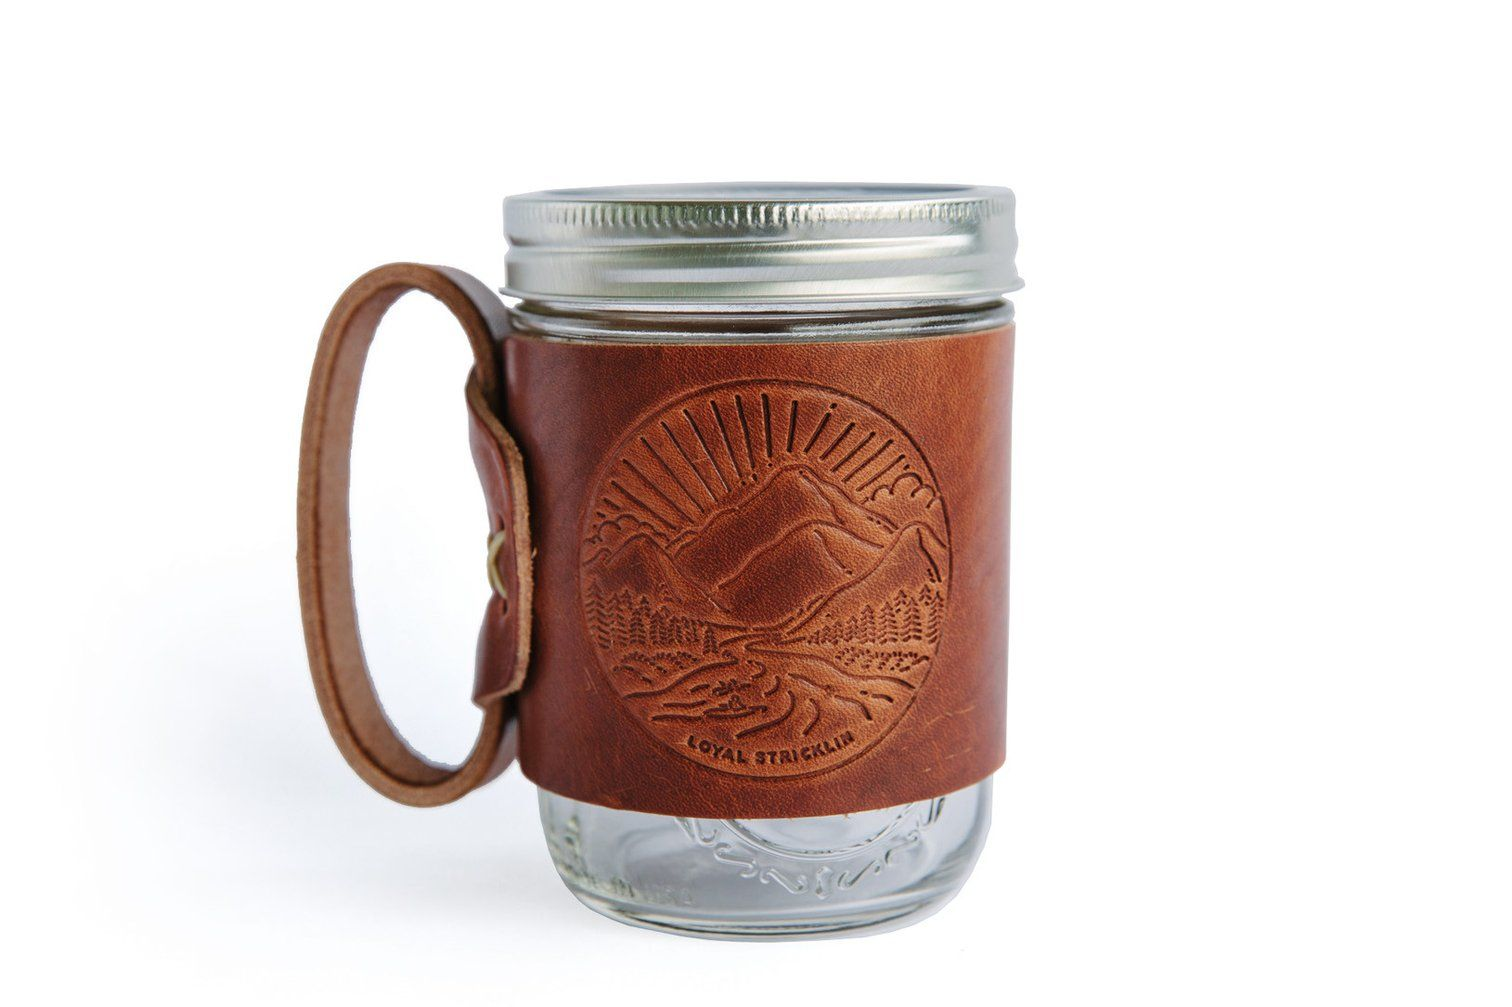 The Aviator Mug Whiskey Landscape Mugs, Handcrafted